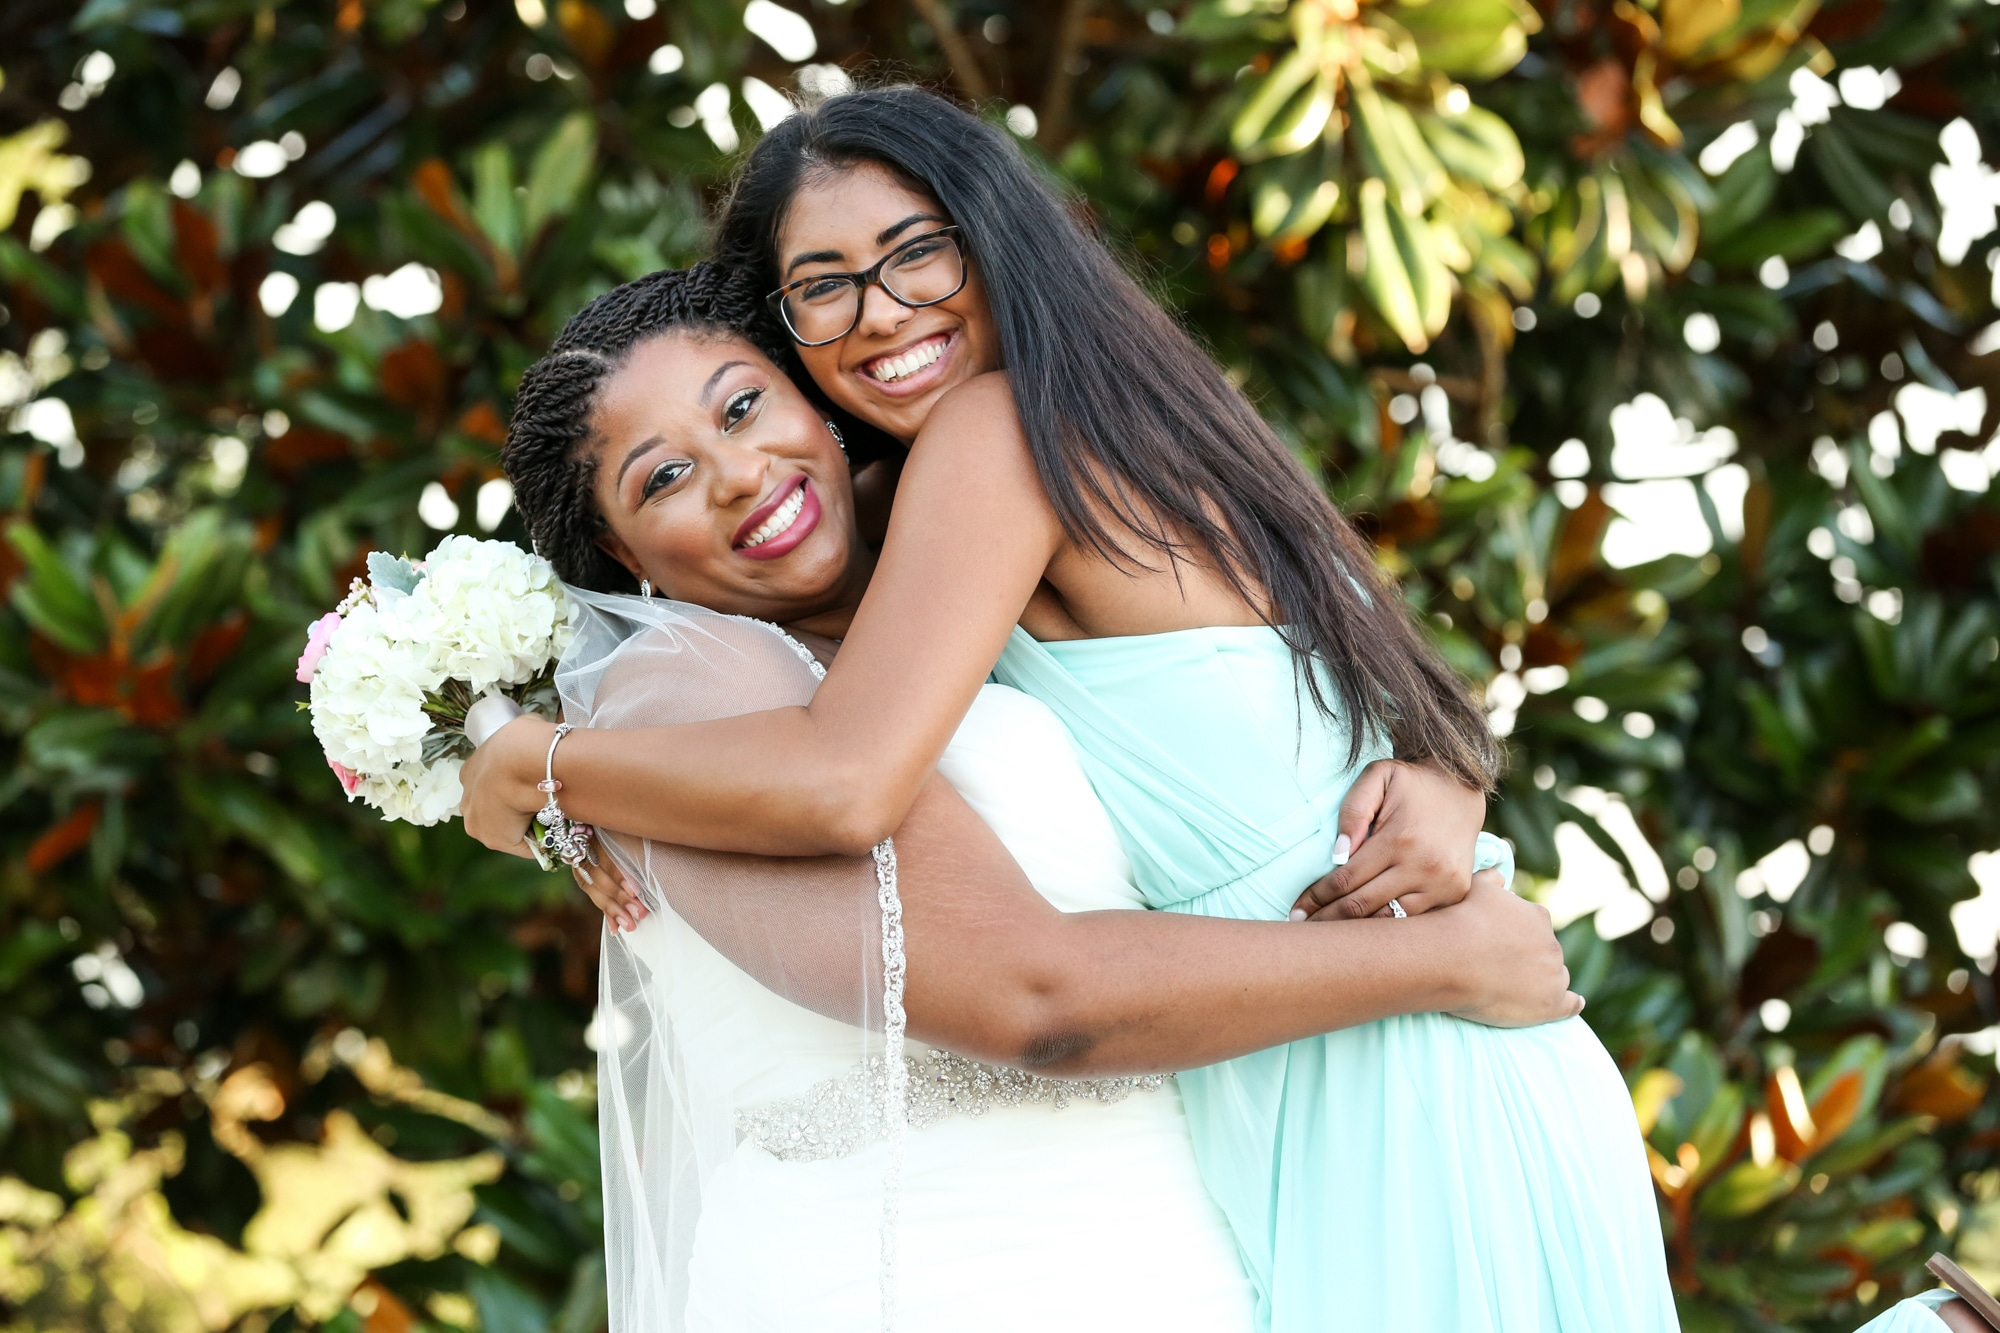 bride and bridesmaid in mint green bridesmaid dress with huge smiles hugging